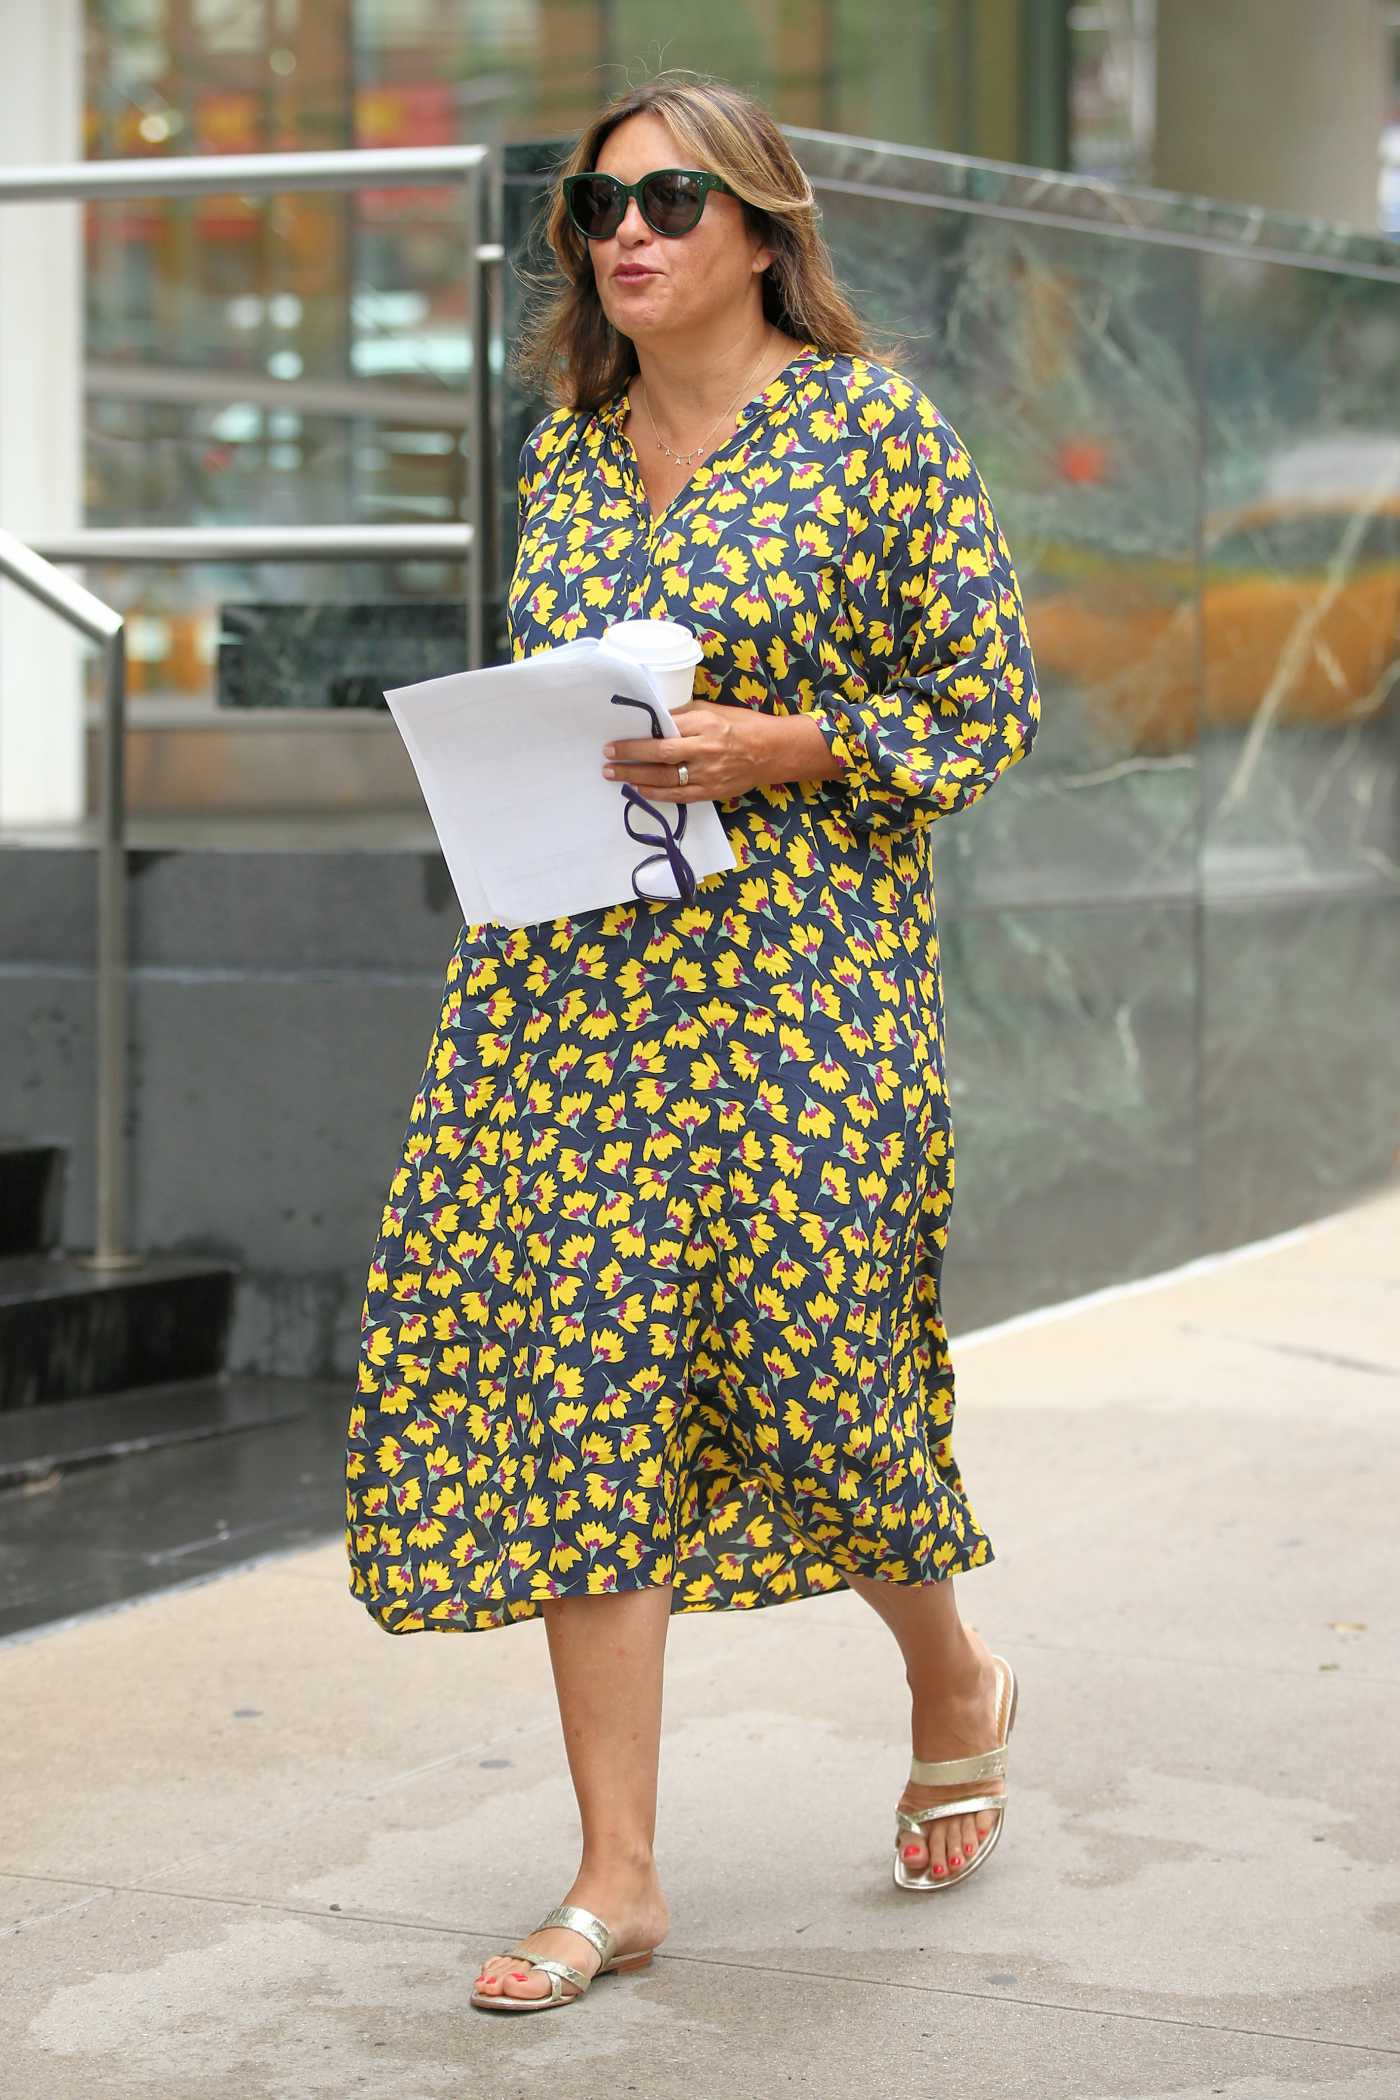 Mariska Hargitay in a Floral Dress on the Set of Law and Order: Special Victims Unit in New York 08/06/2019